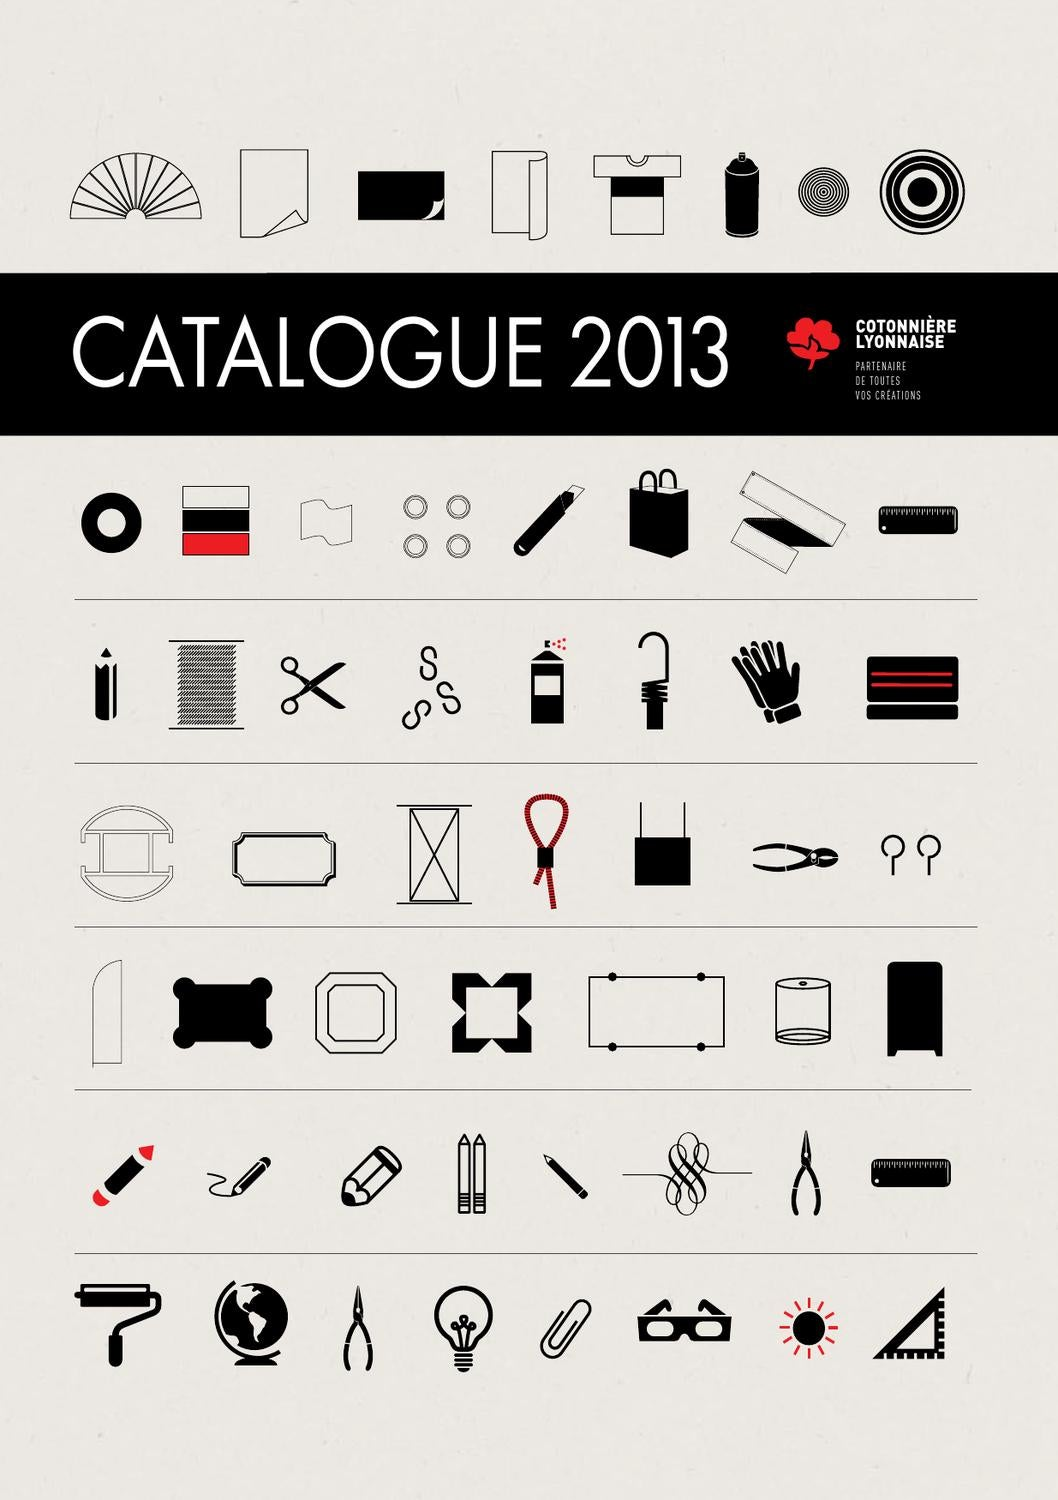 Issuu Catalogue Lyonnaise By Cotonniere Extra 2013 PX0NnOZ8wk